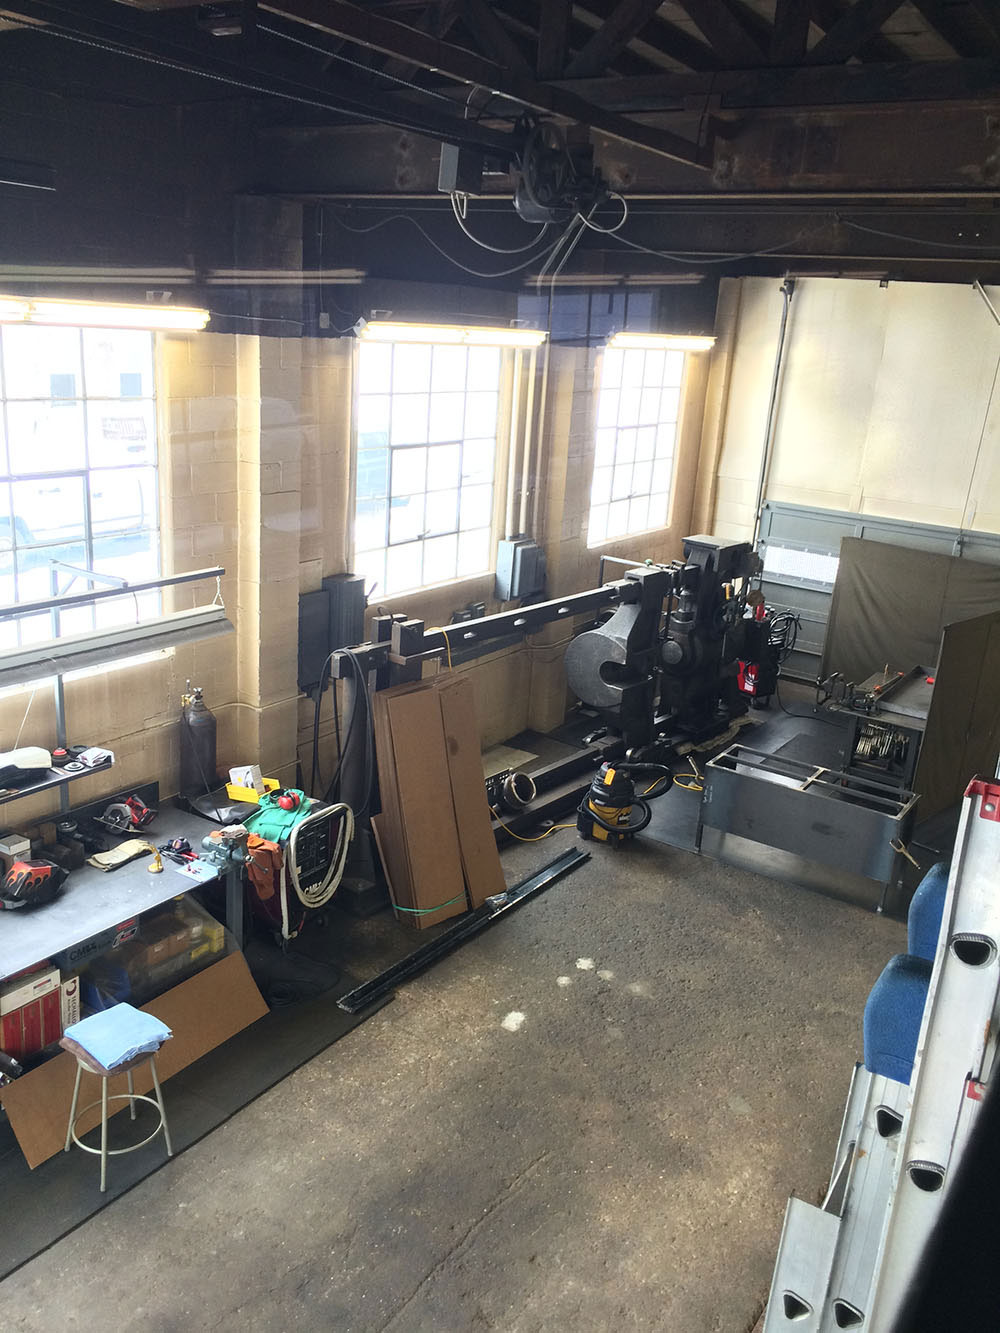 Overview of Shop Fabrication Side 1 (From Loft)